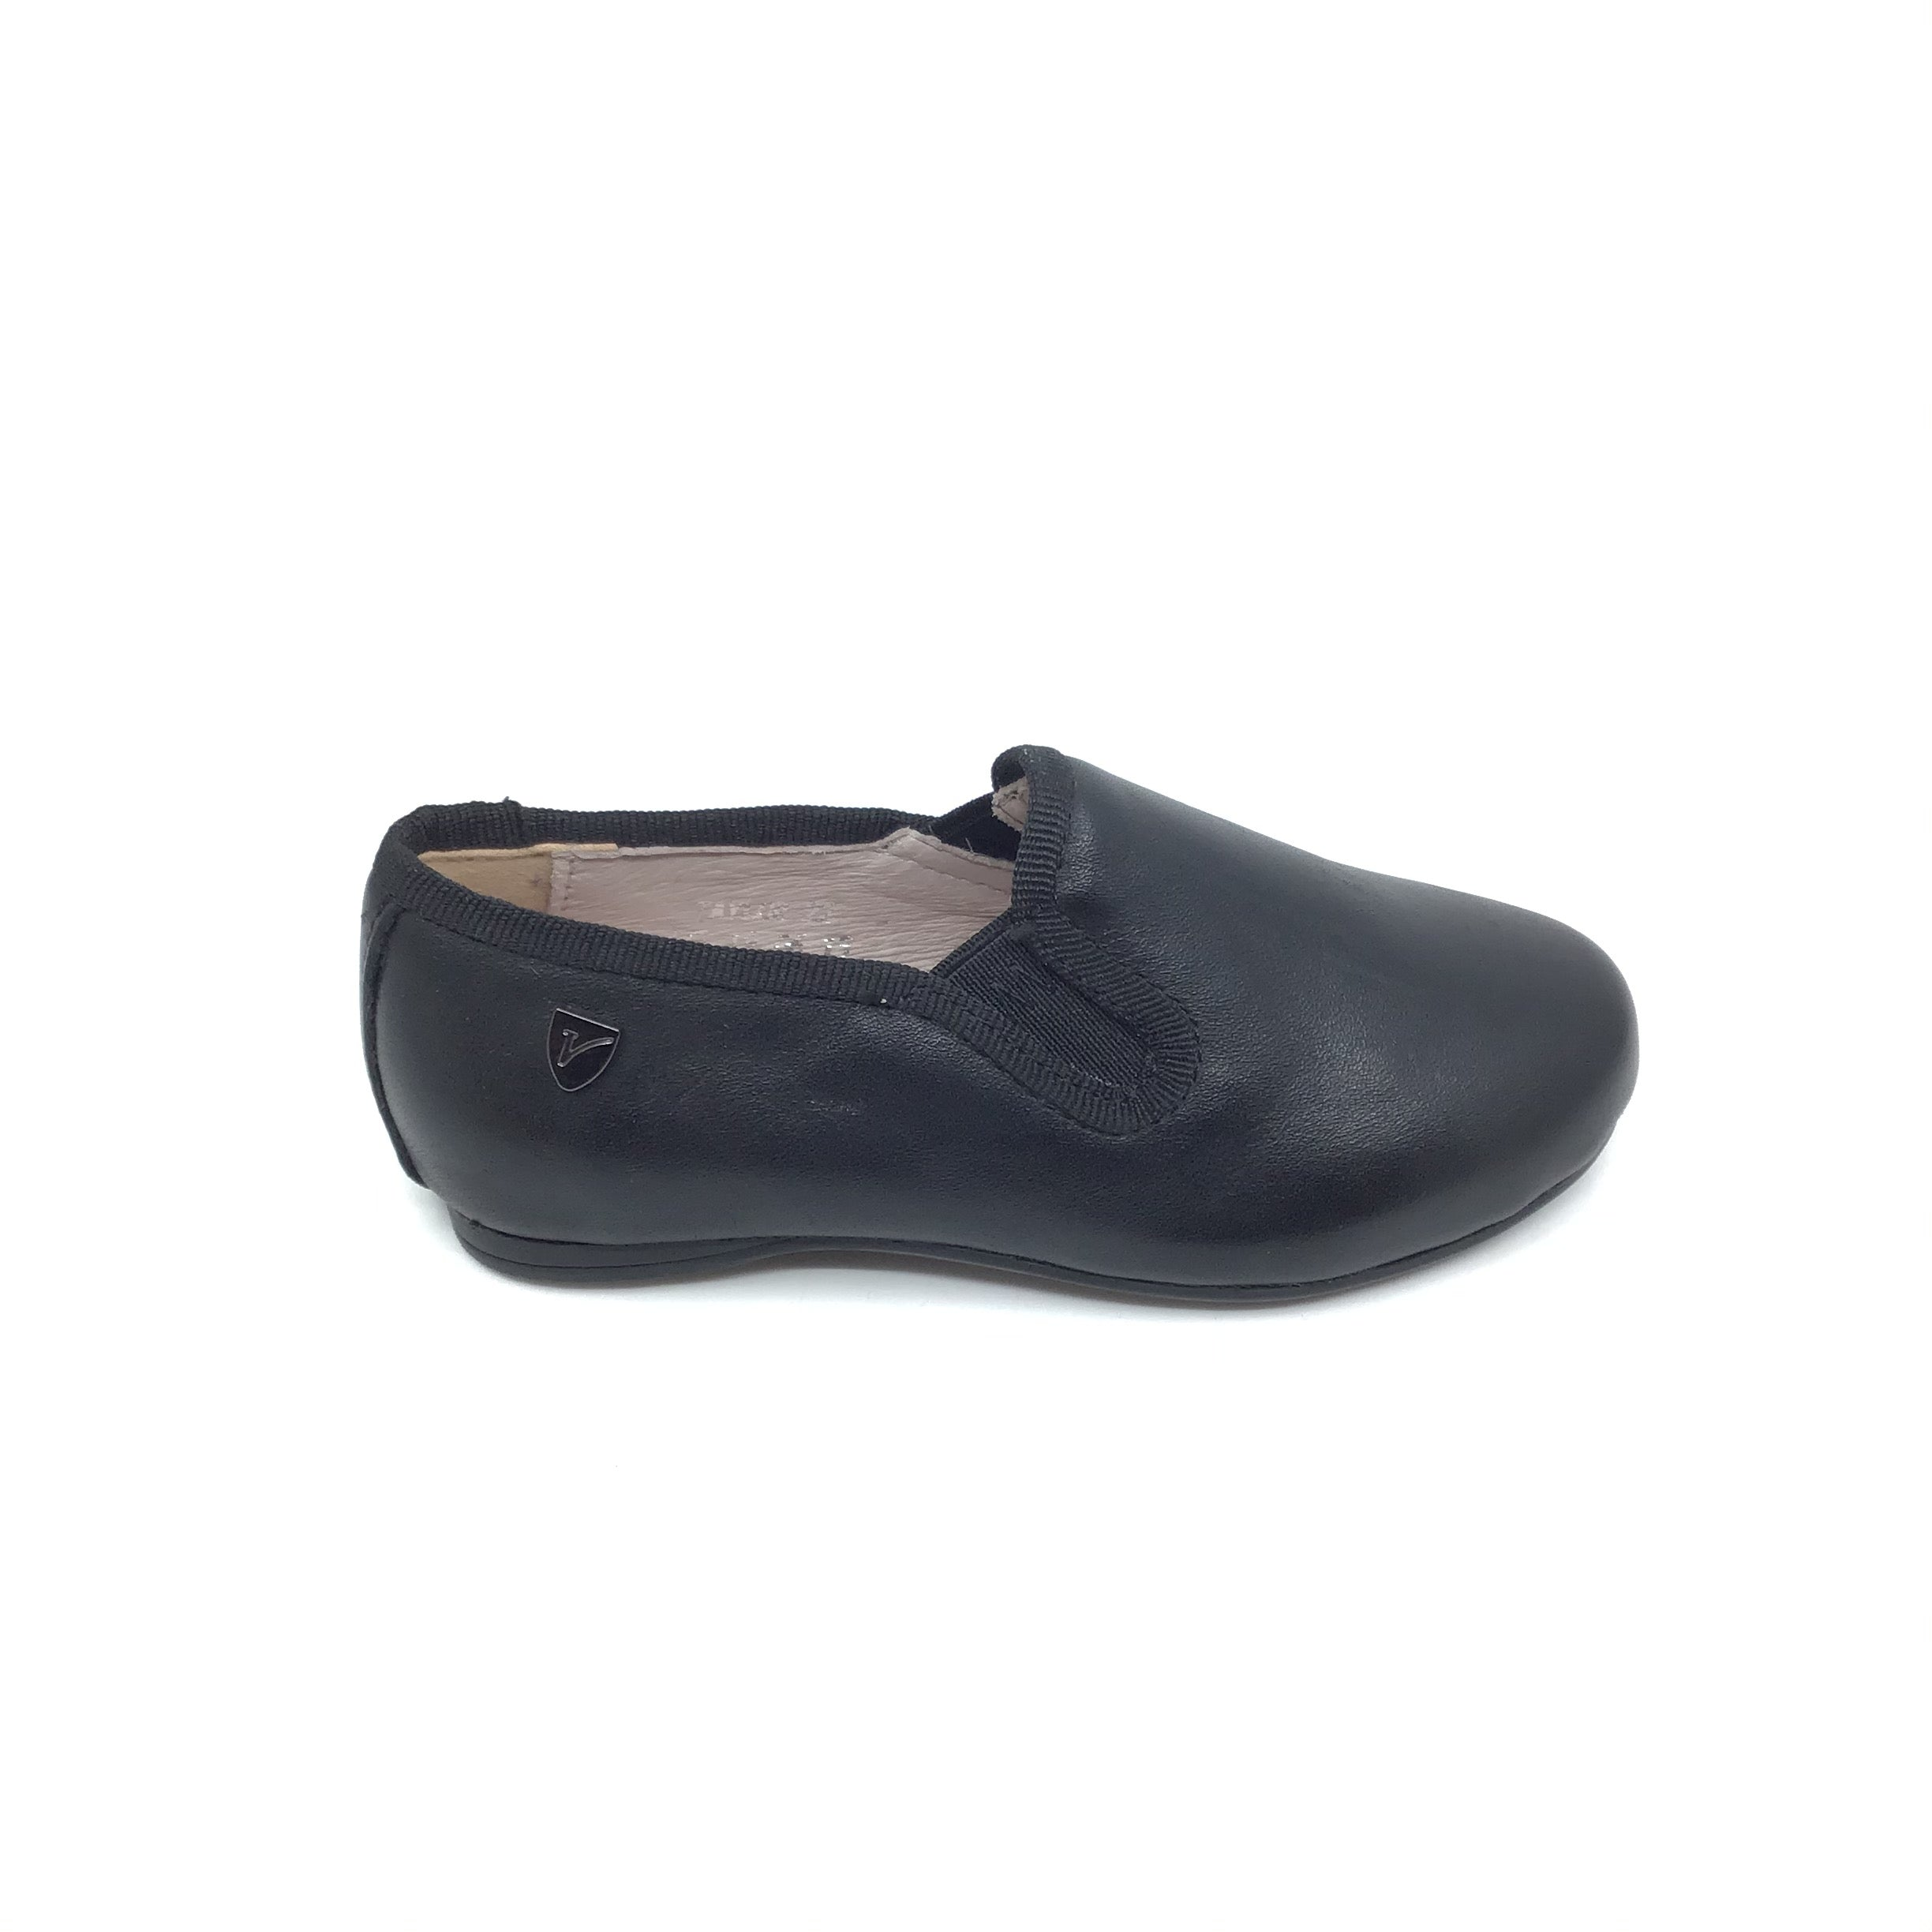 Venettini Black Leather Slip On